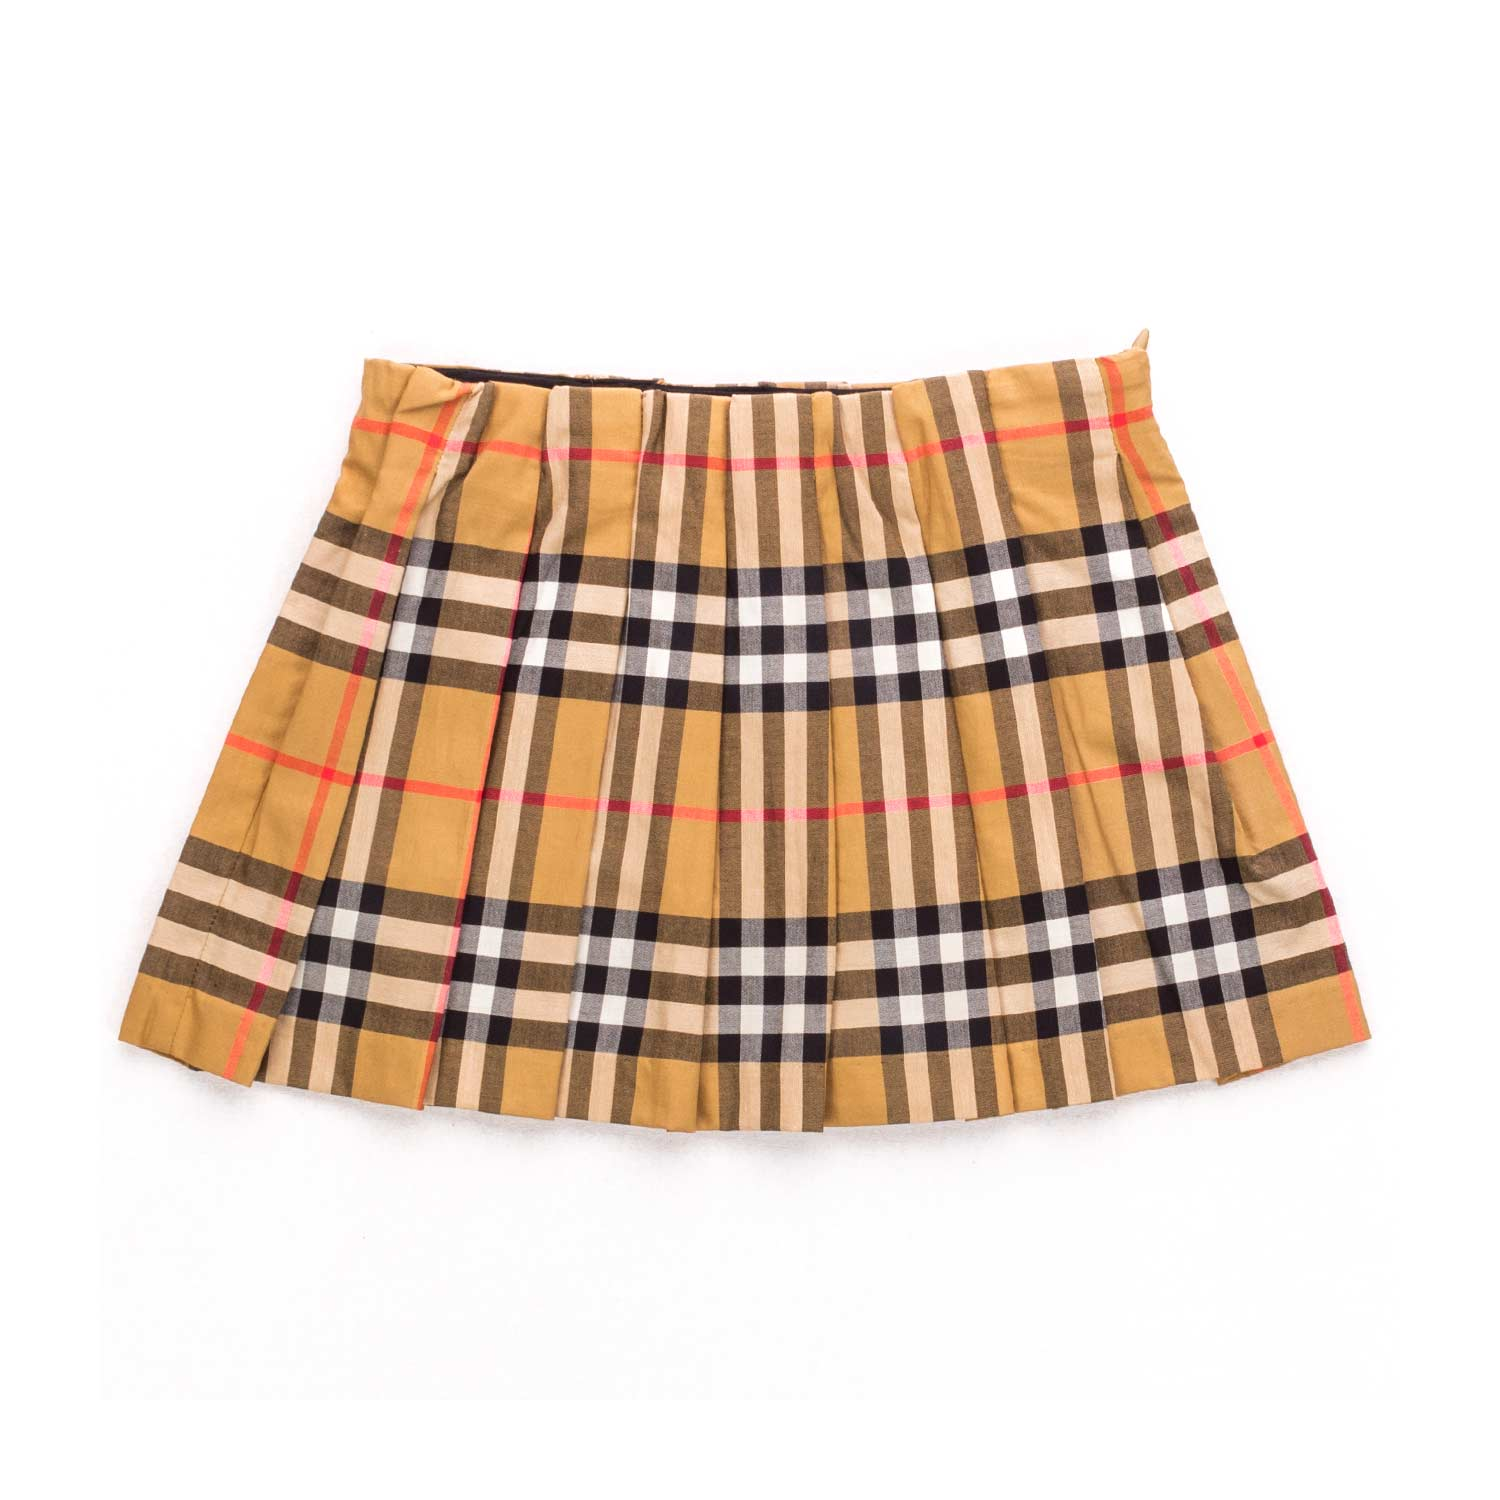 829440183864 Burberry - Check Pleated Skirt For Baby Girls - annameglio.com shop online